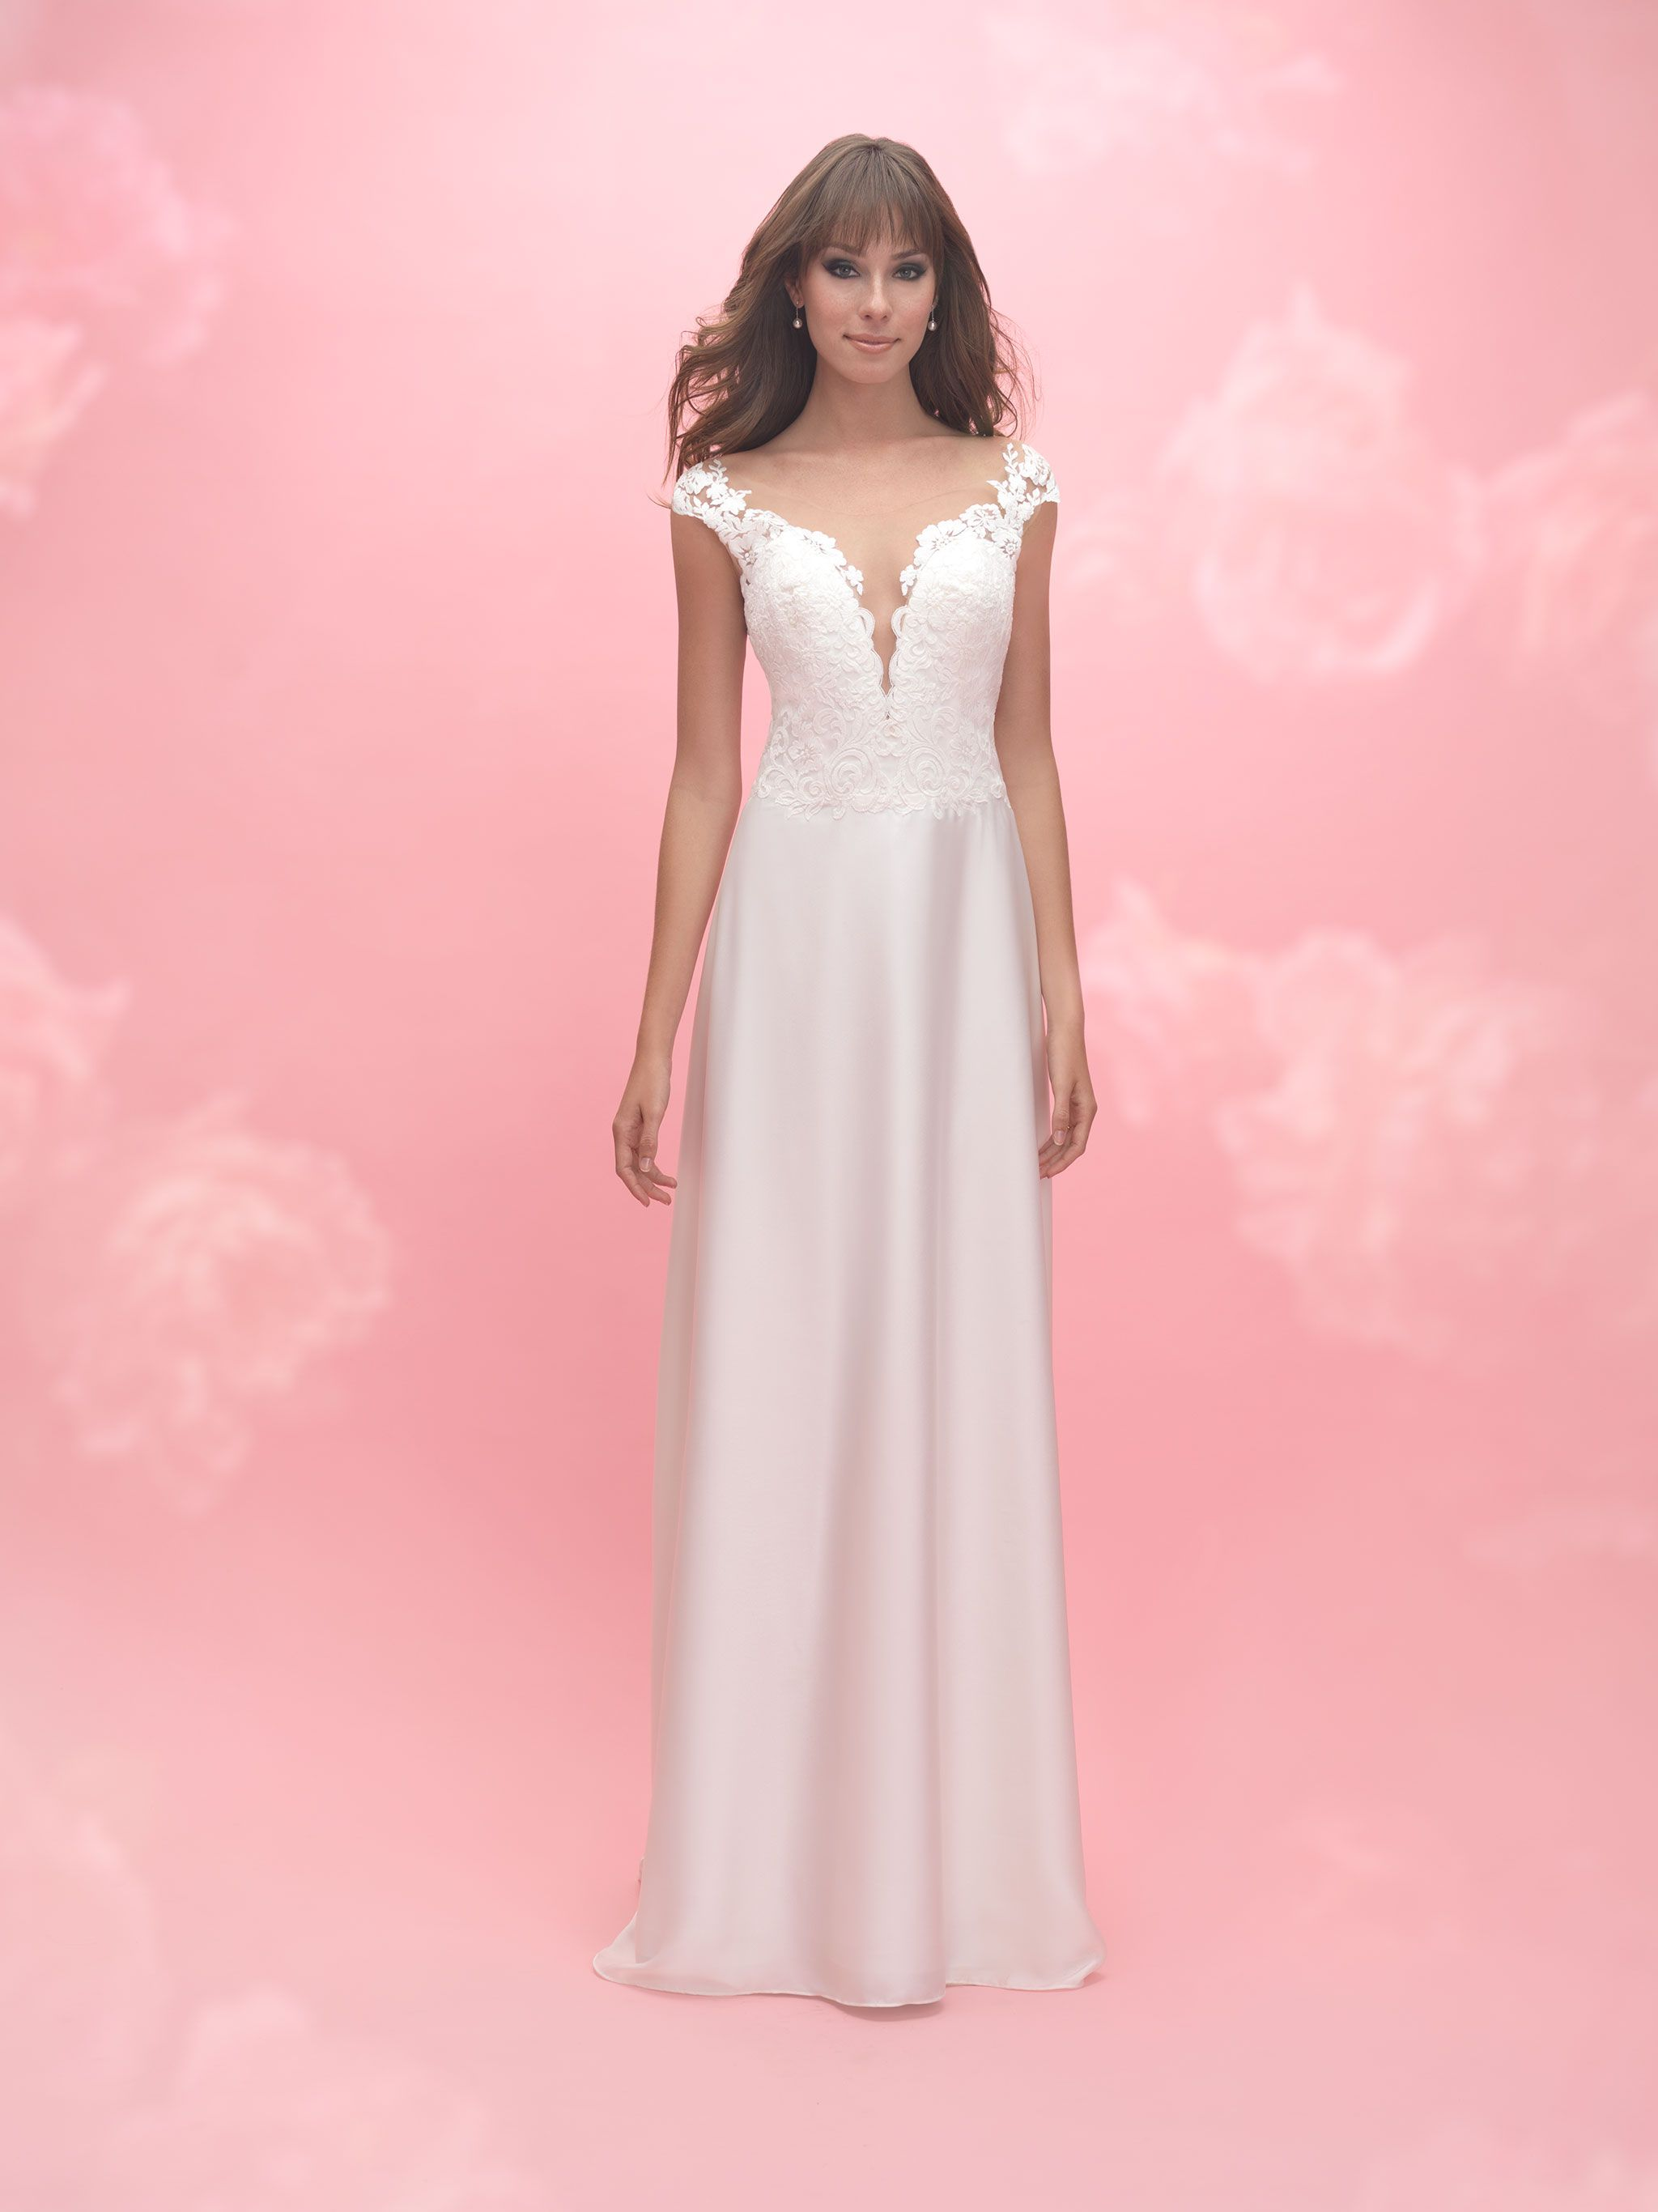 Allure romance style available lowus bridal wedding